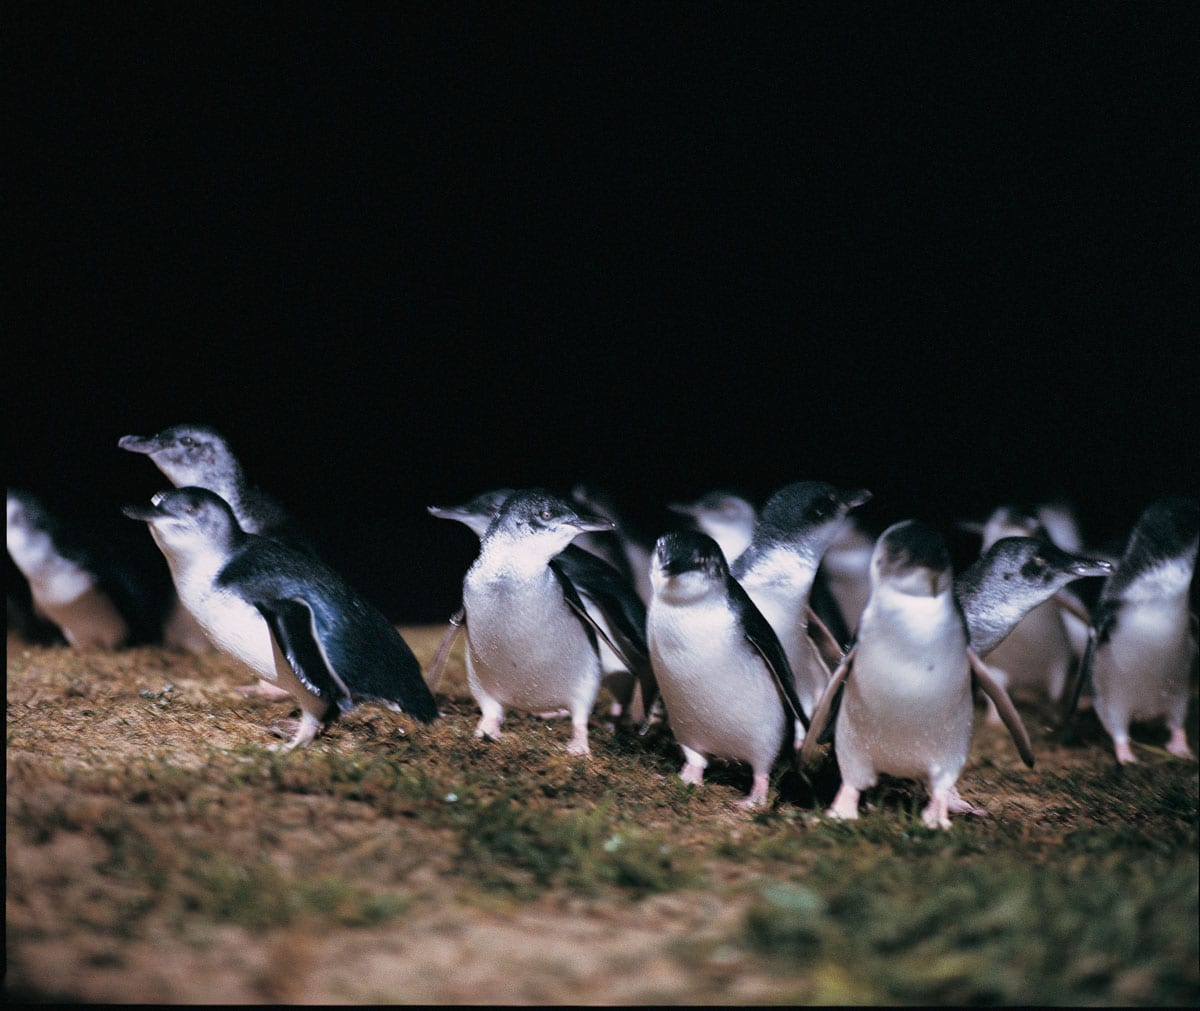 Watching penguins waddle out of the water and into their burrows is one of the cutest things to see in Australia!